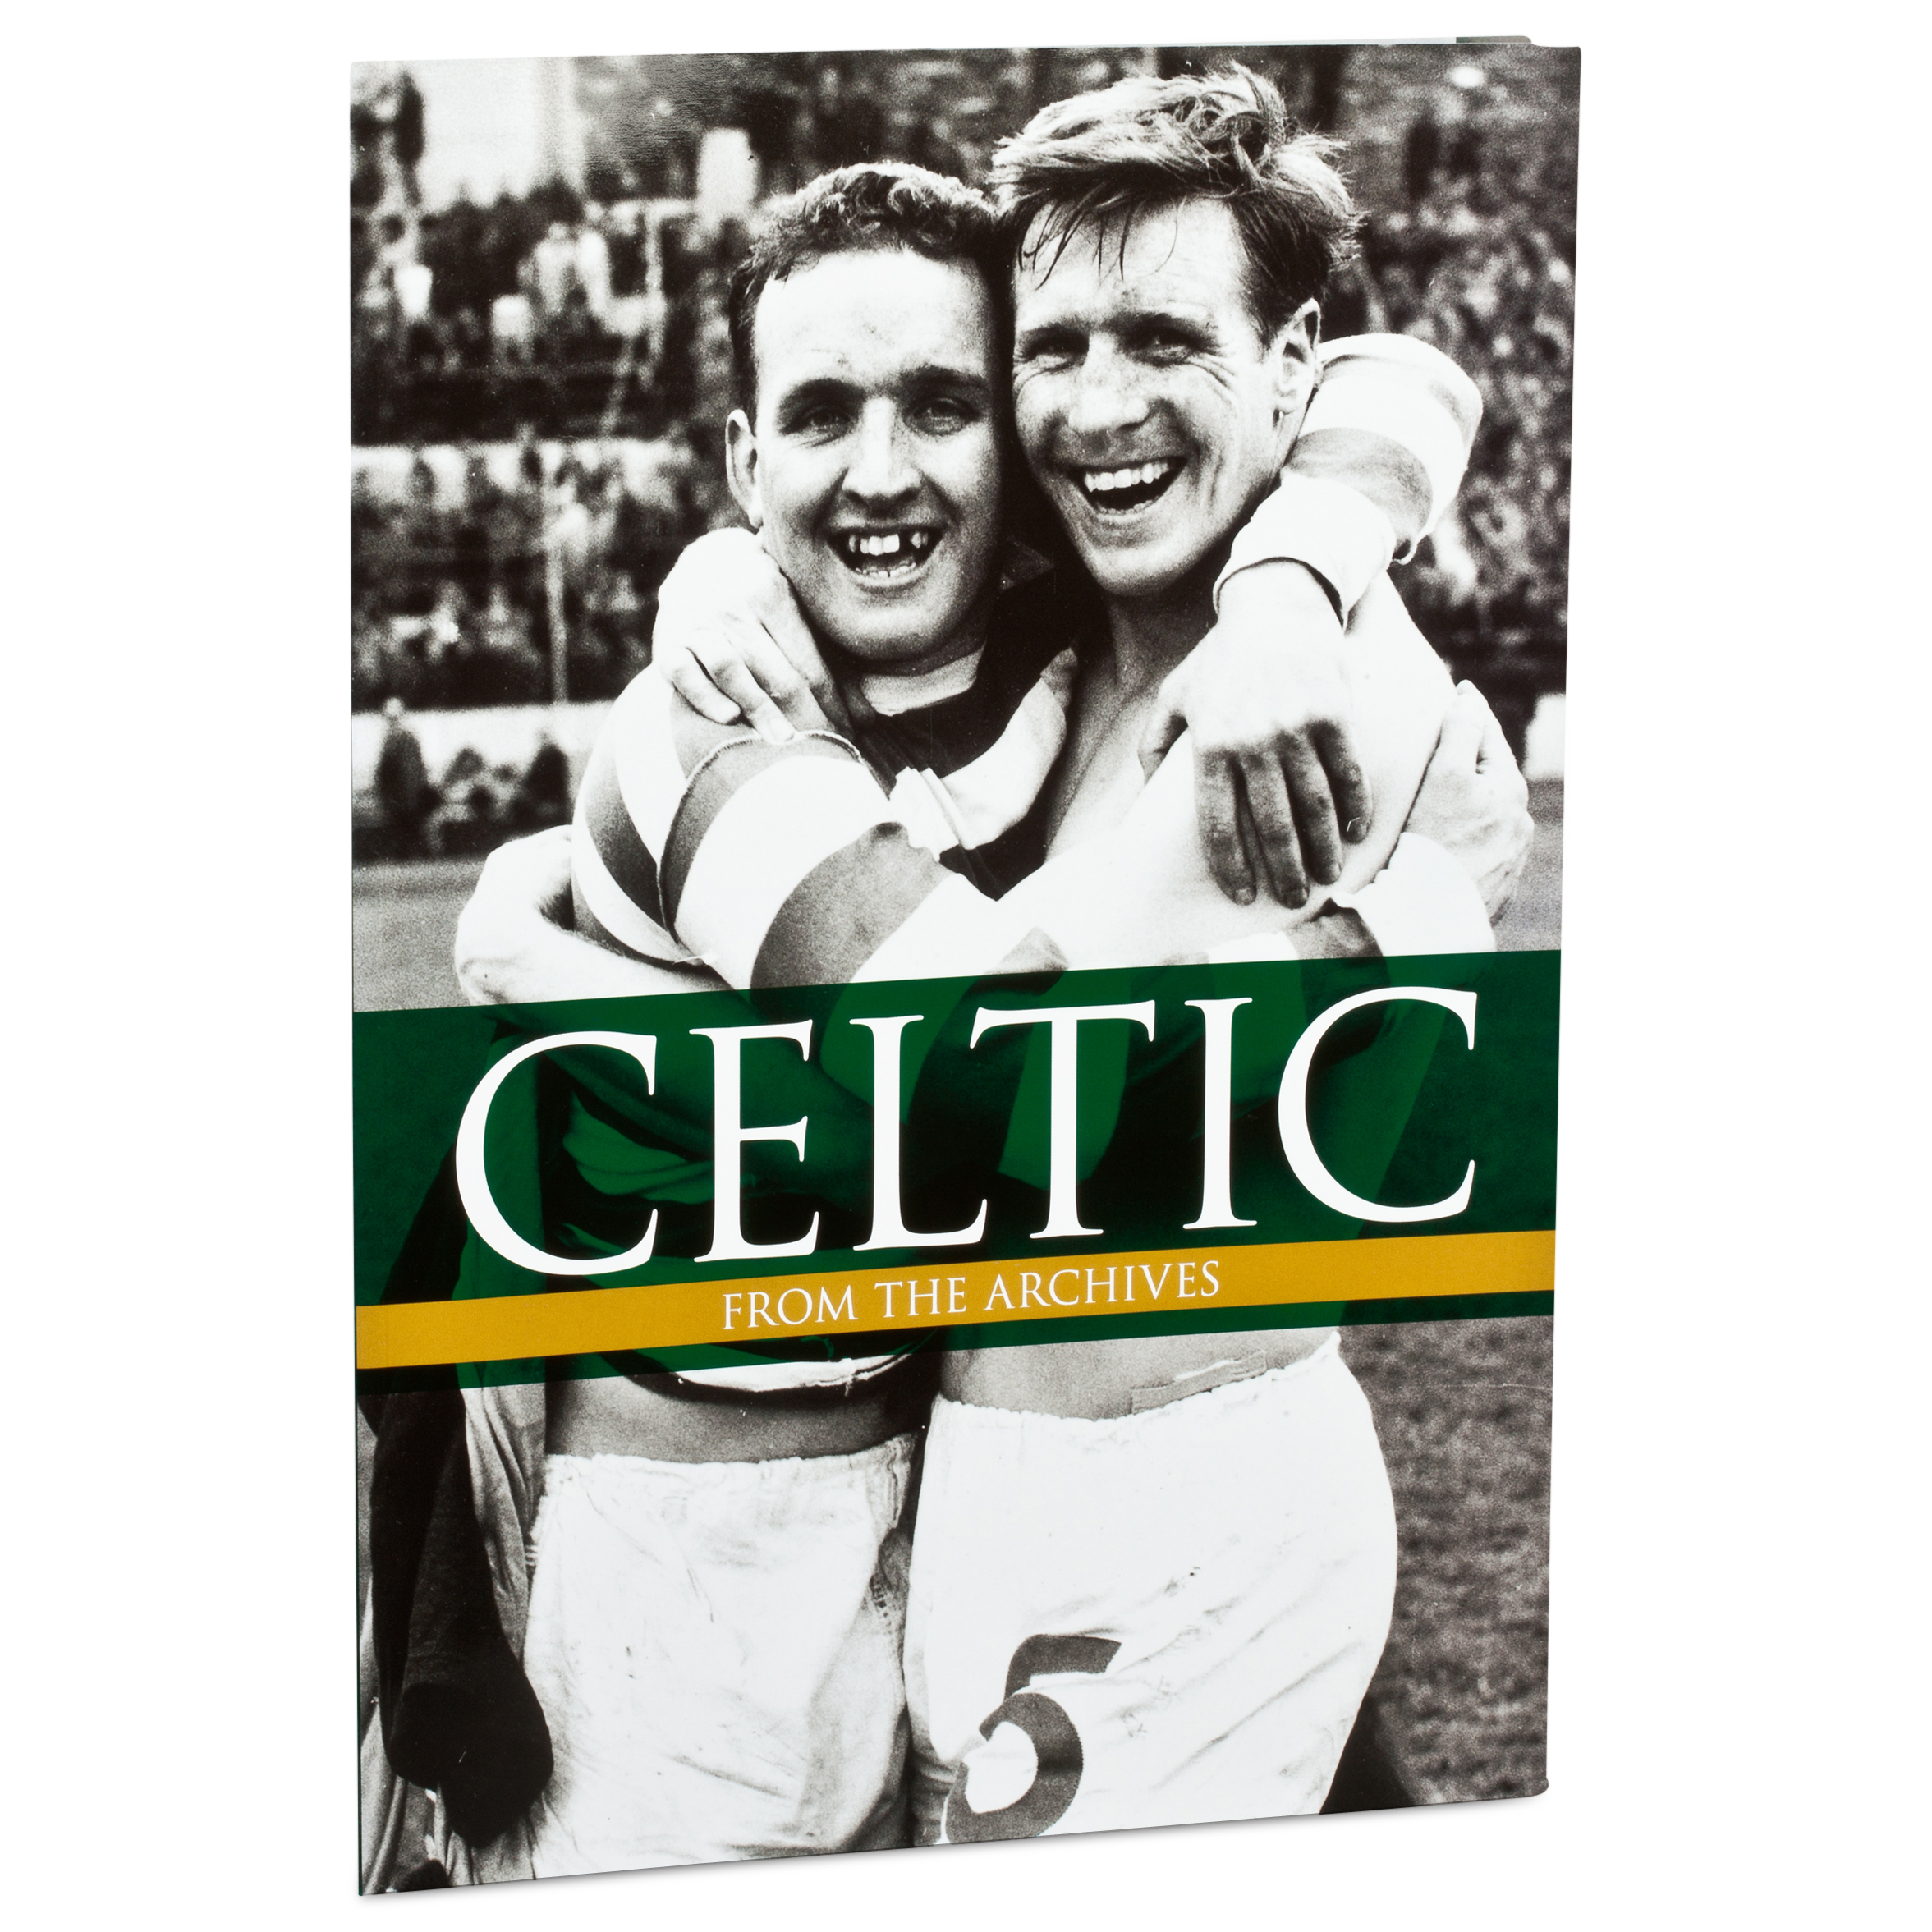 Celtic Through The Archives Book